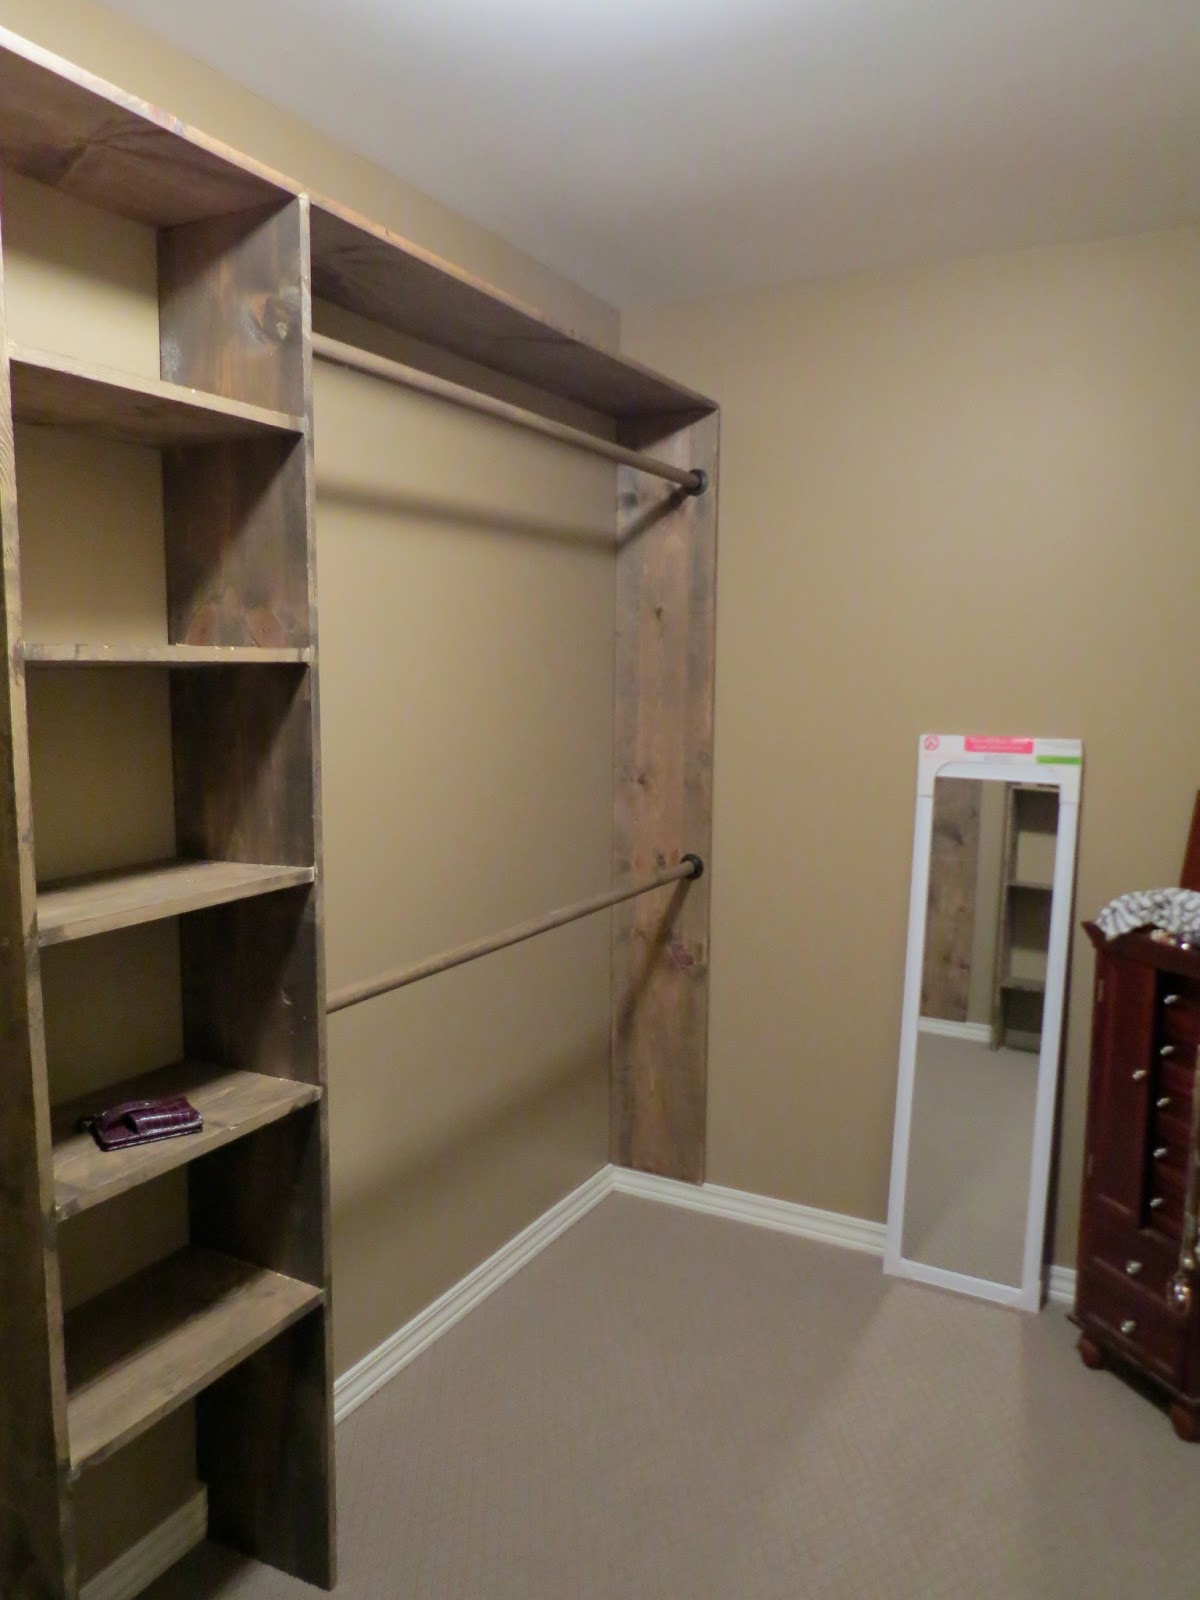 Let 39 s just build a house walk in closets no more living Design your bedroom from scratch